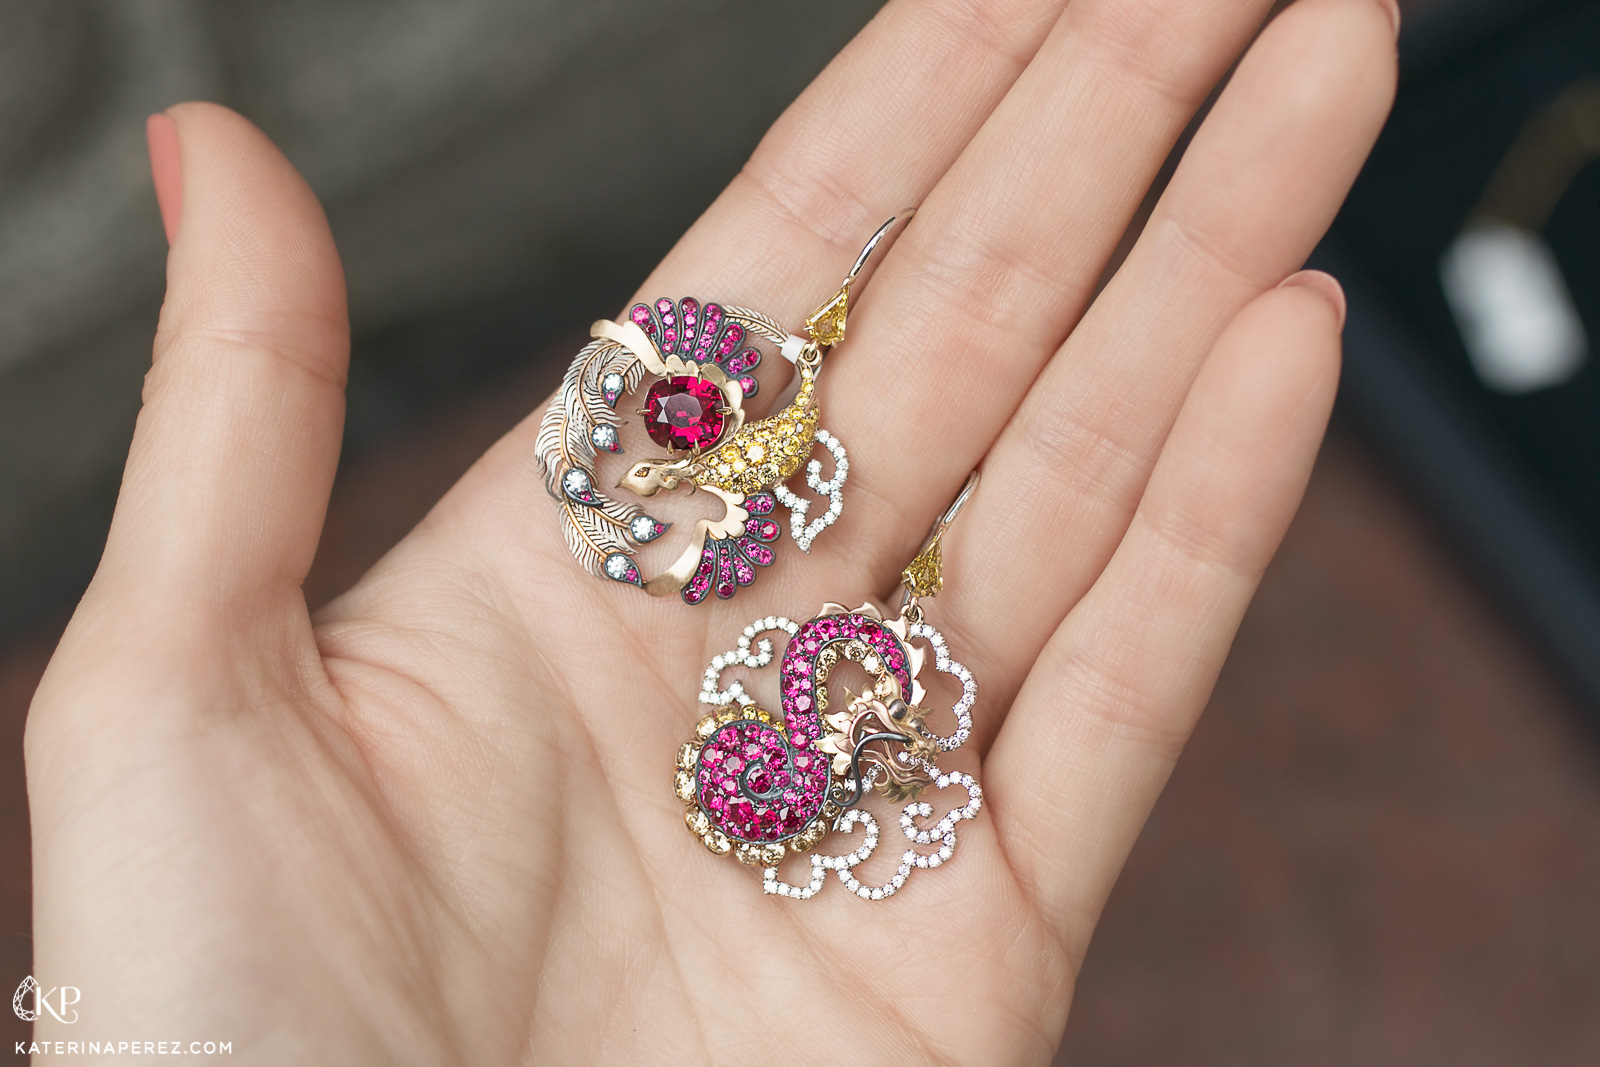 David Michael earrings with rubies, yellow diamonds and colourless diamonds in 18k yellow and black gold